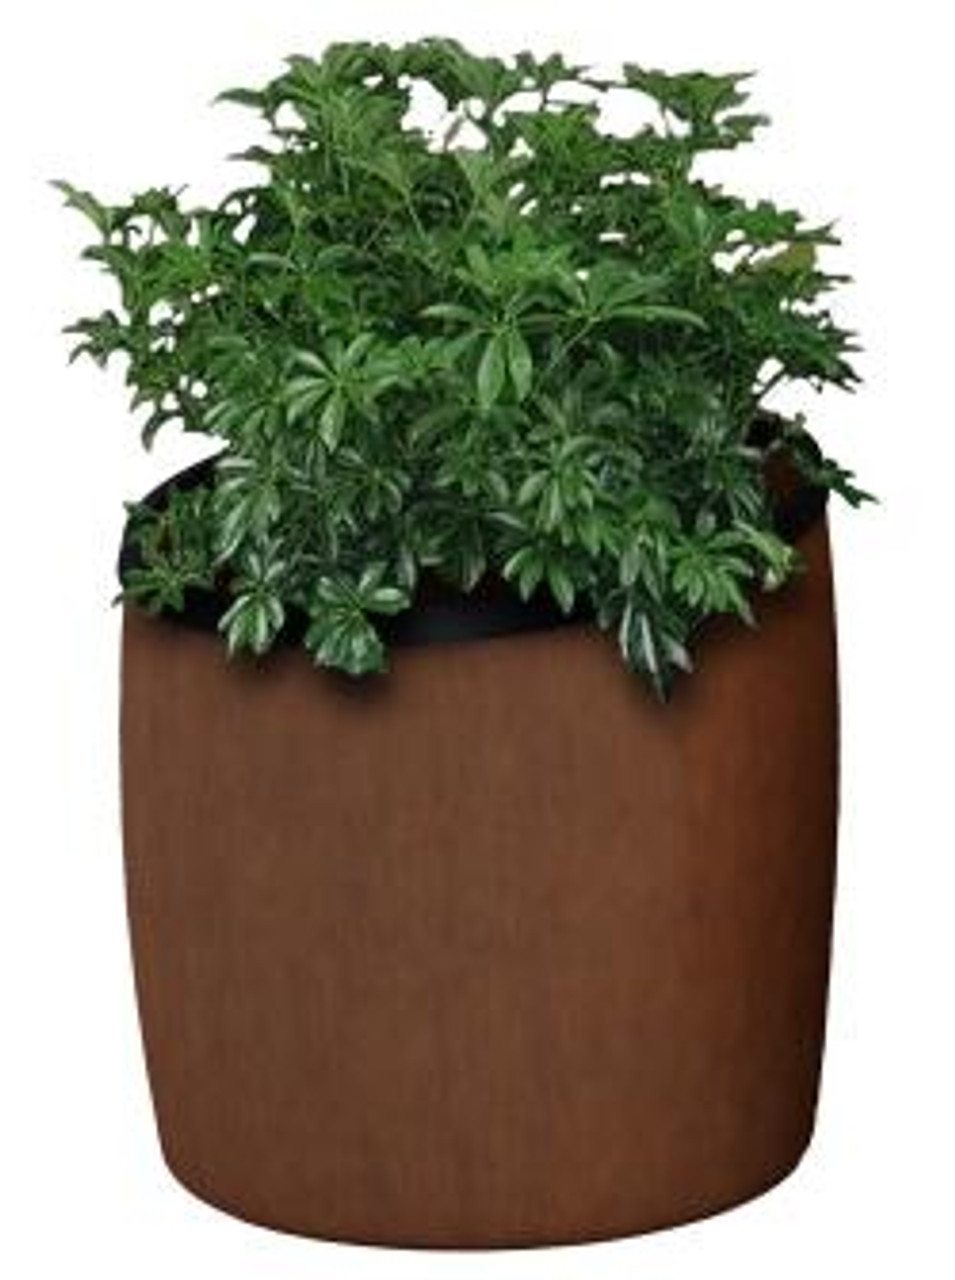 10 Gallon Garden Series Plastic Faux Wood Planter 756341 (2 Colors)